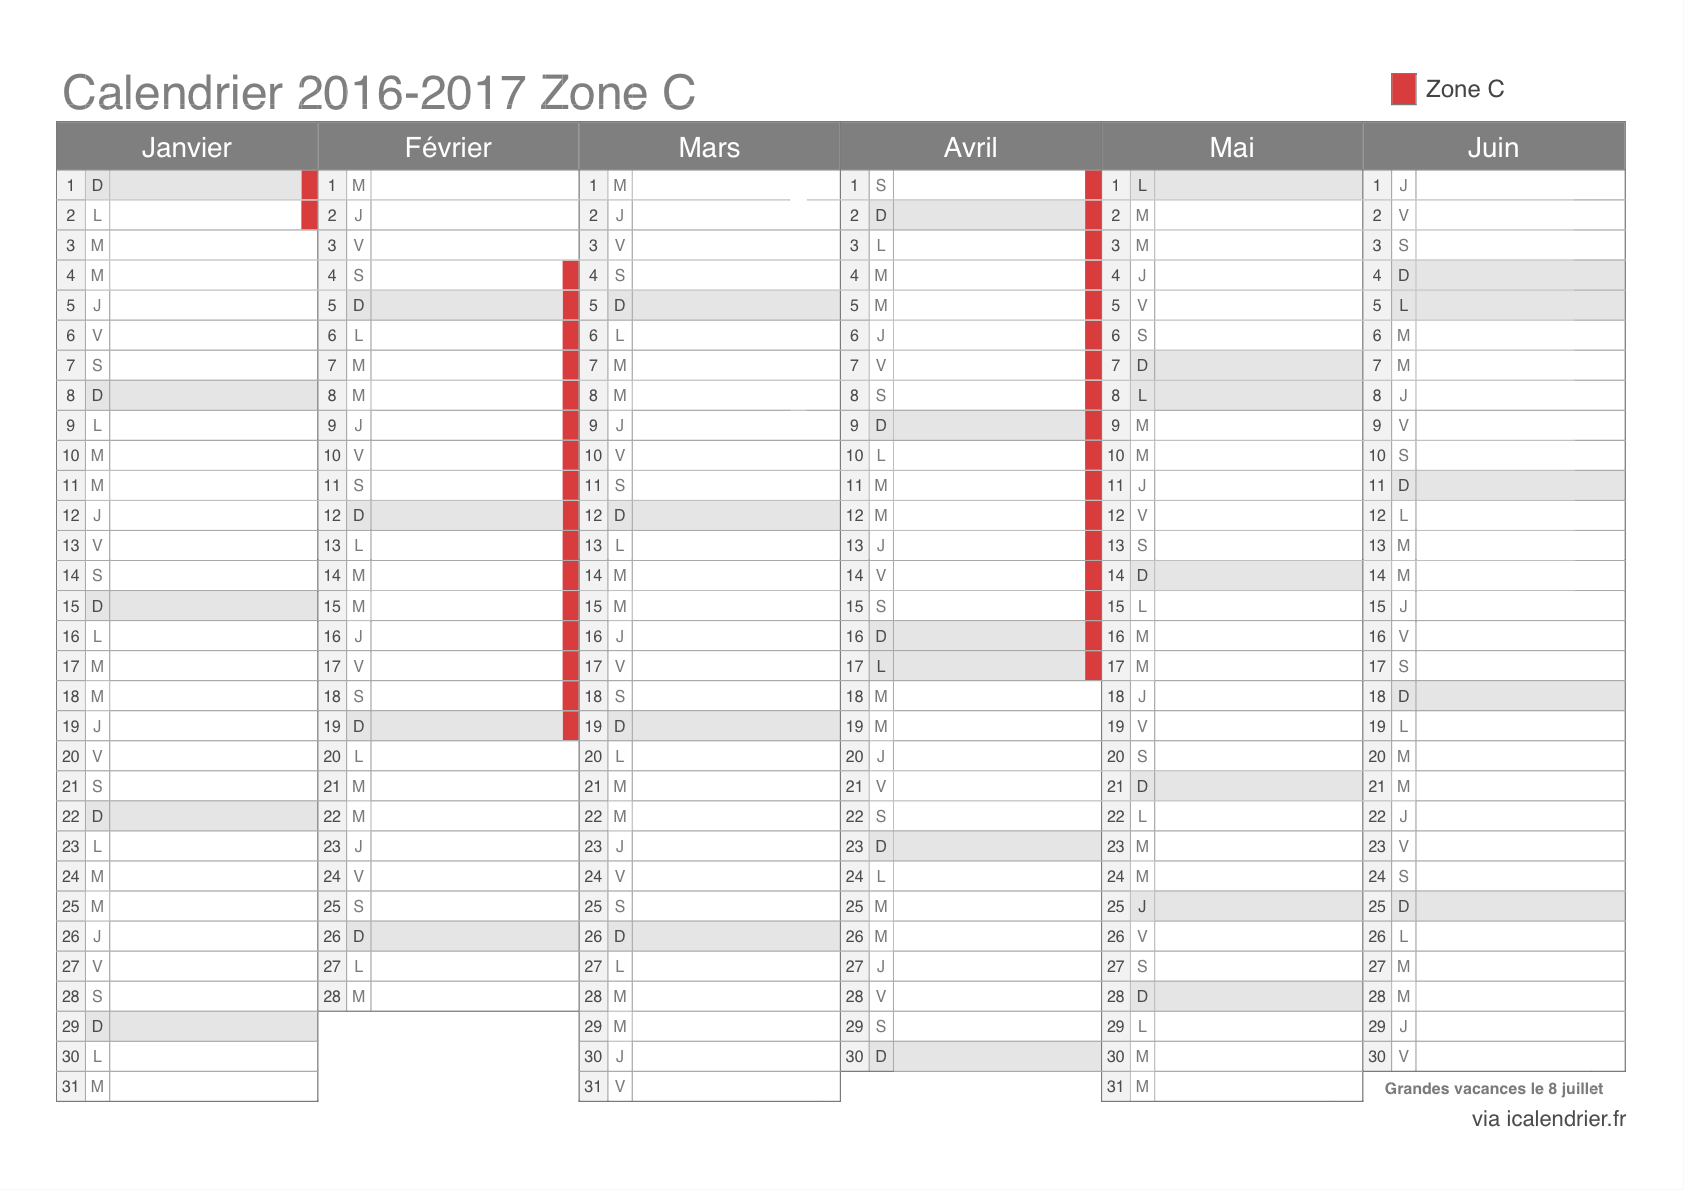 vacances scolaires 2016 2017 zone c calendrier et dates. Black Bedroom Furniture Sets. Home Design Ideas